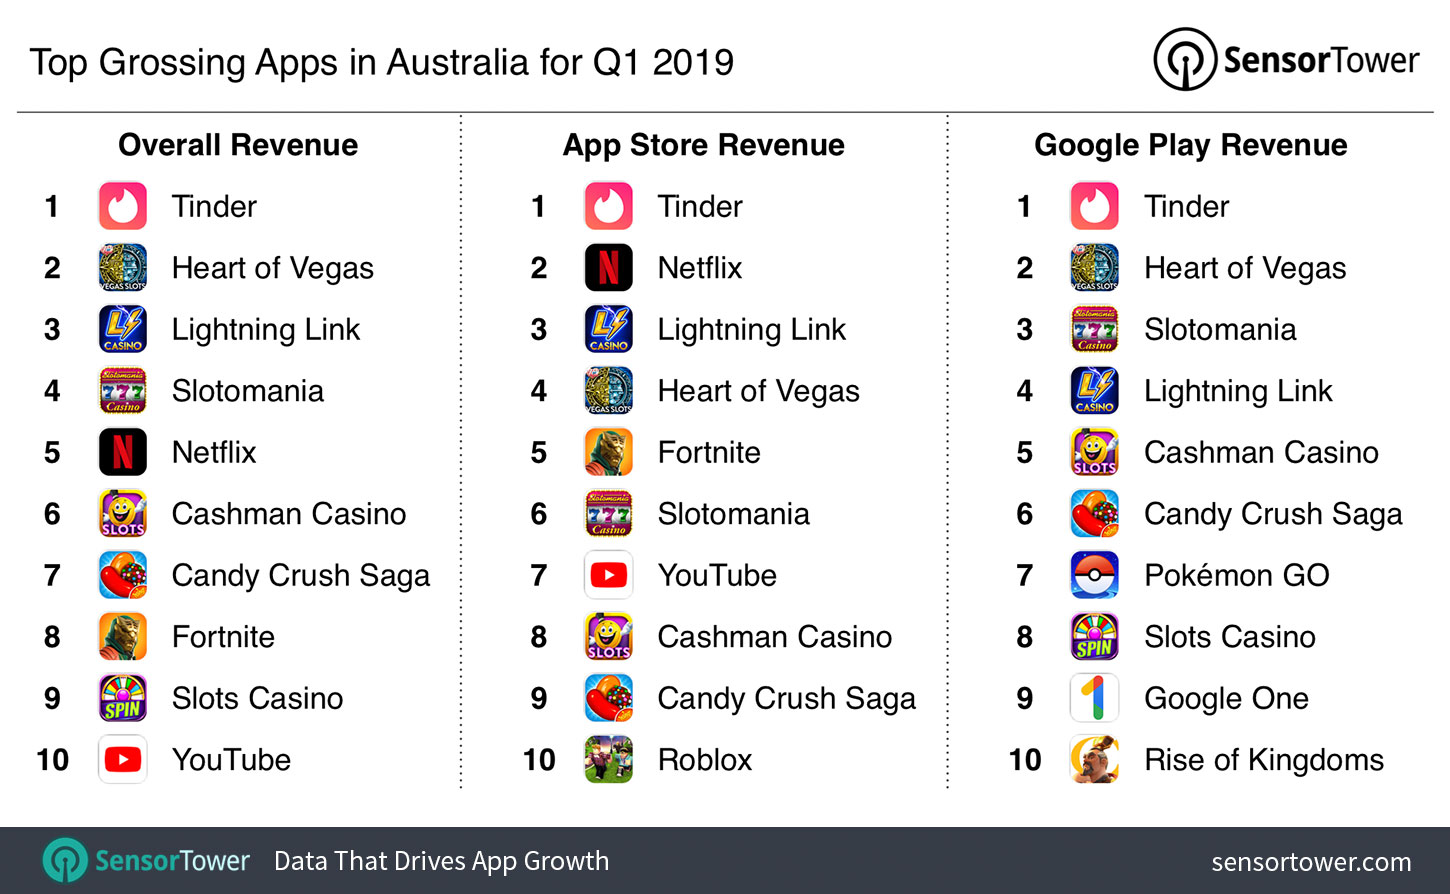 Top Grossing Apps in Australia for Q1 2019 - Internet